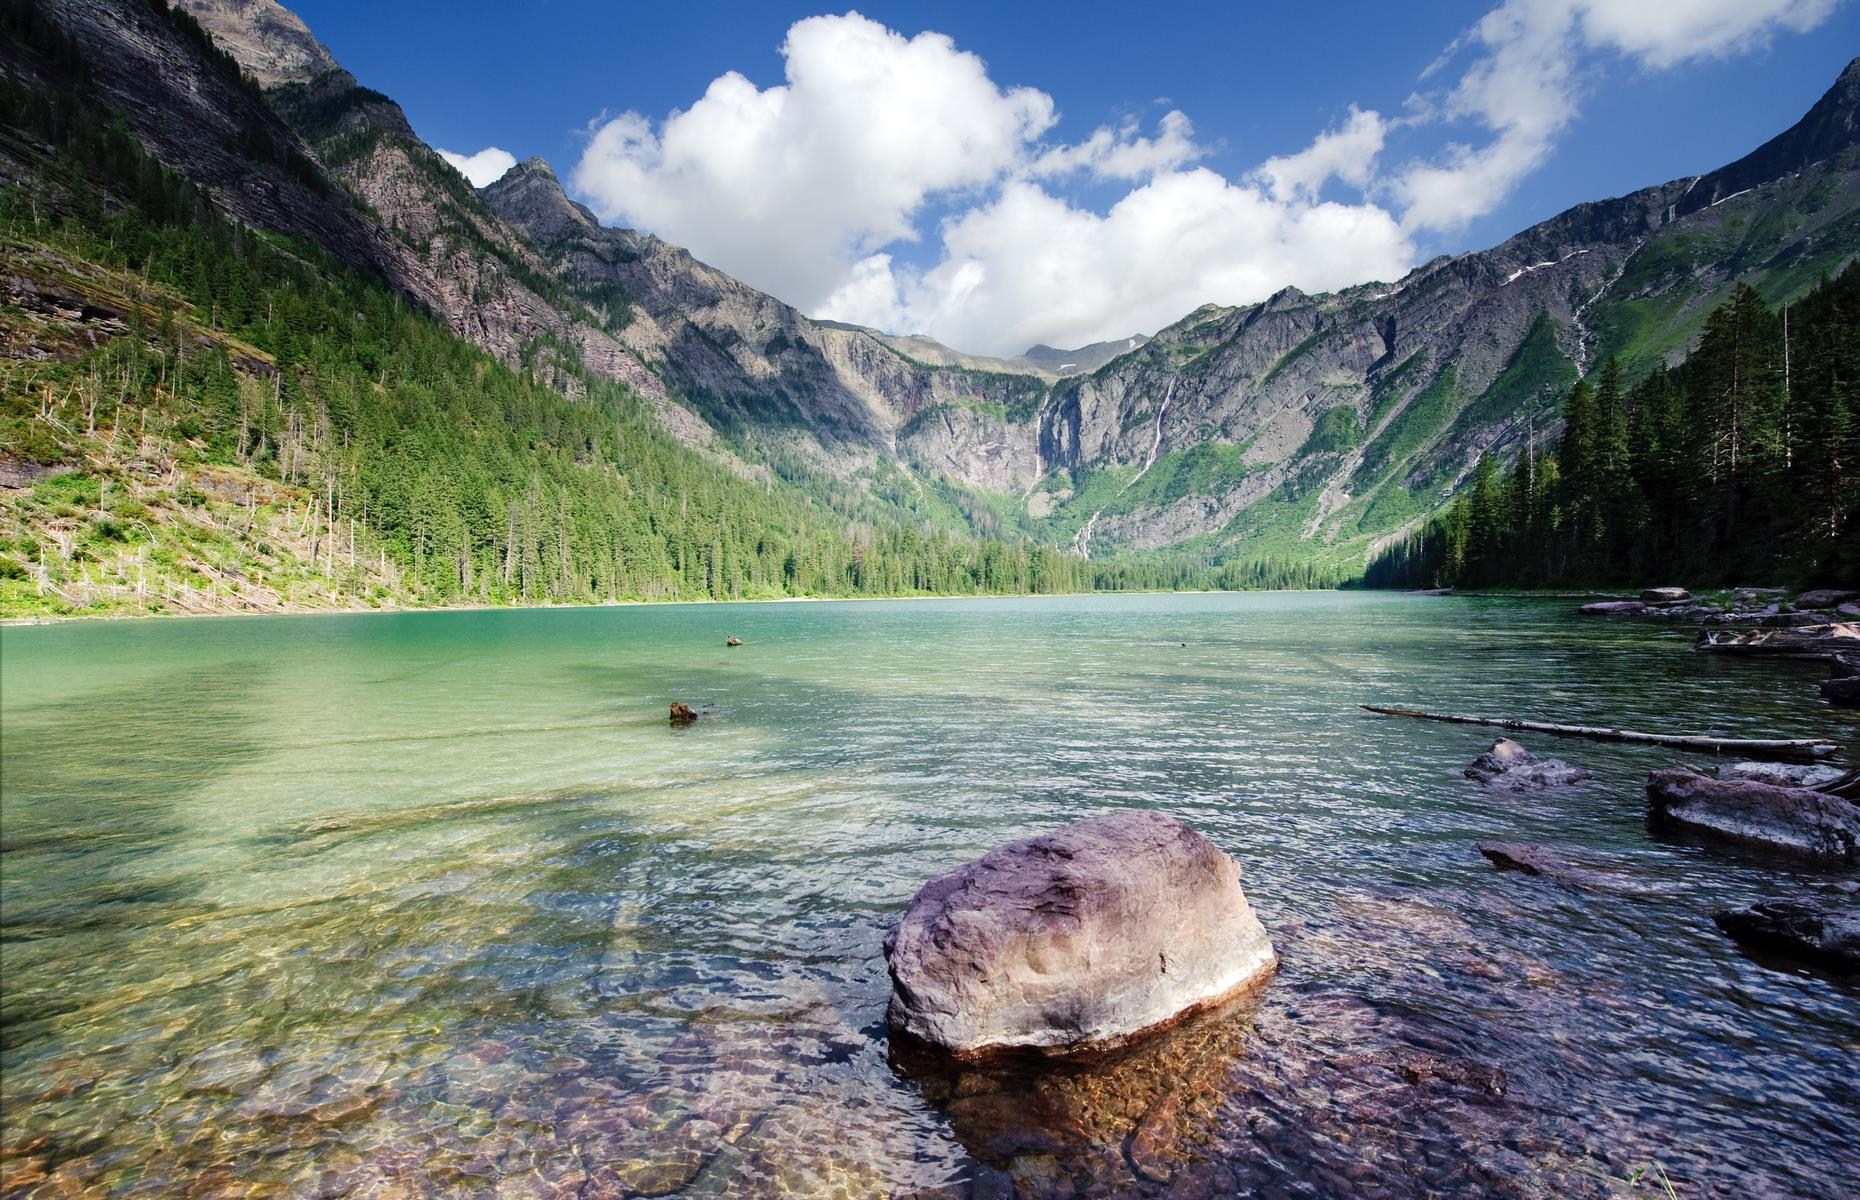 Slide 8 of 31: Montana is drowning in beautiful bodies of water, with more than 3,000 lakes and reservoirs across the state. It's hard to pick the prettiest but we reckon Avalanche Lake just edges into the lead.